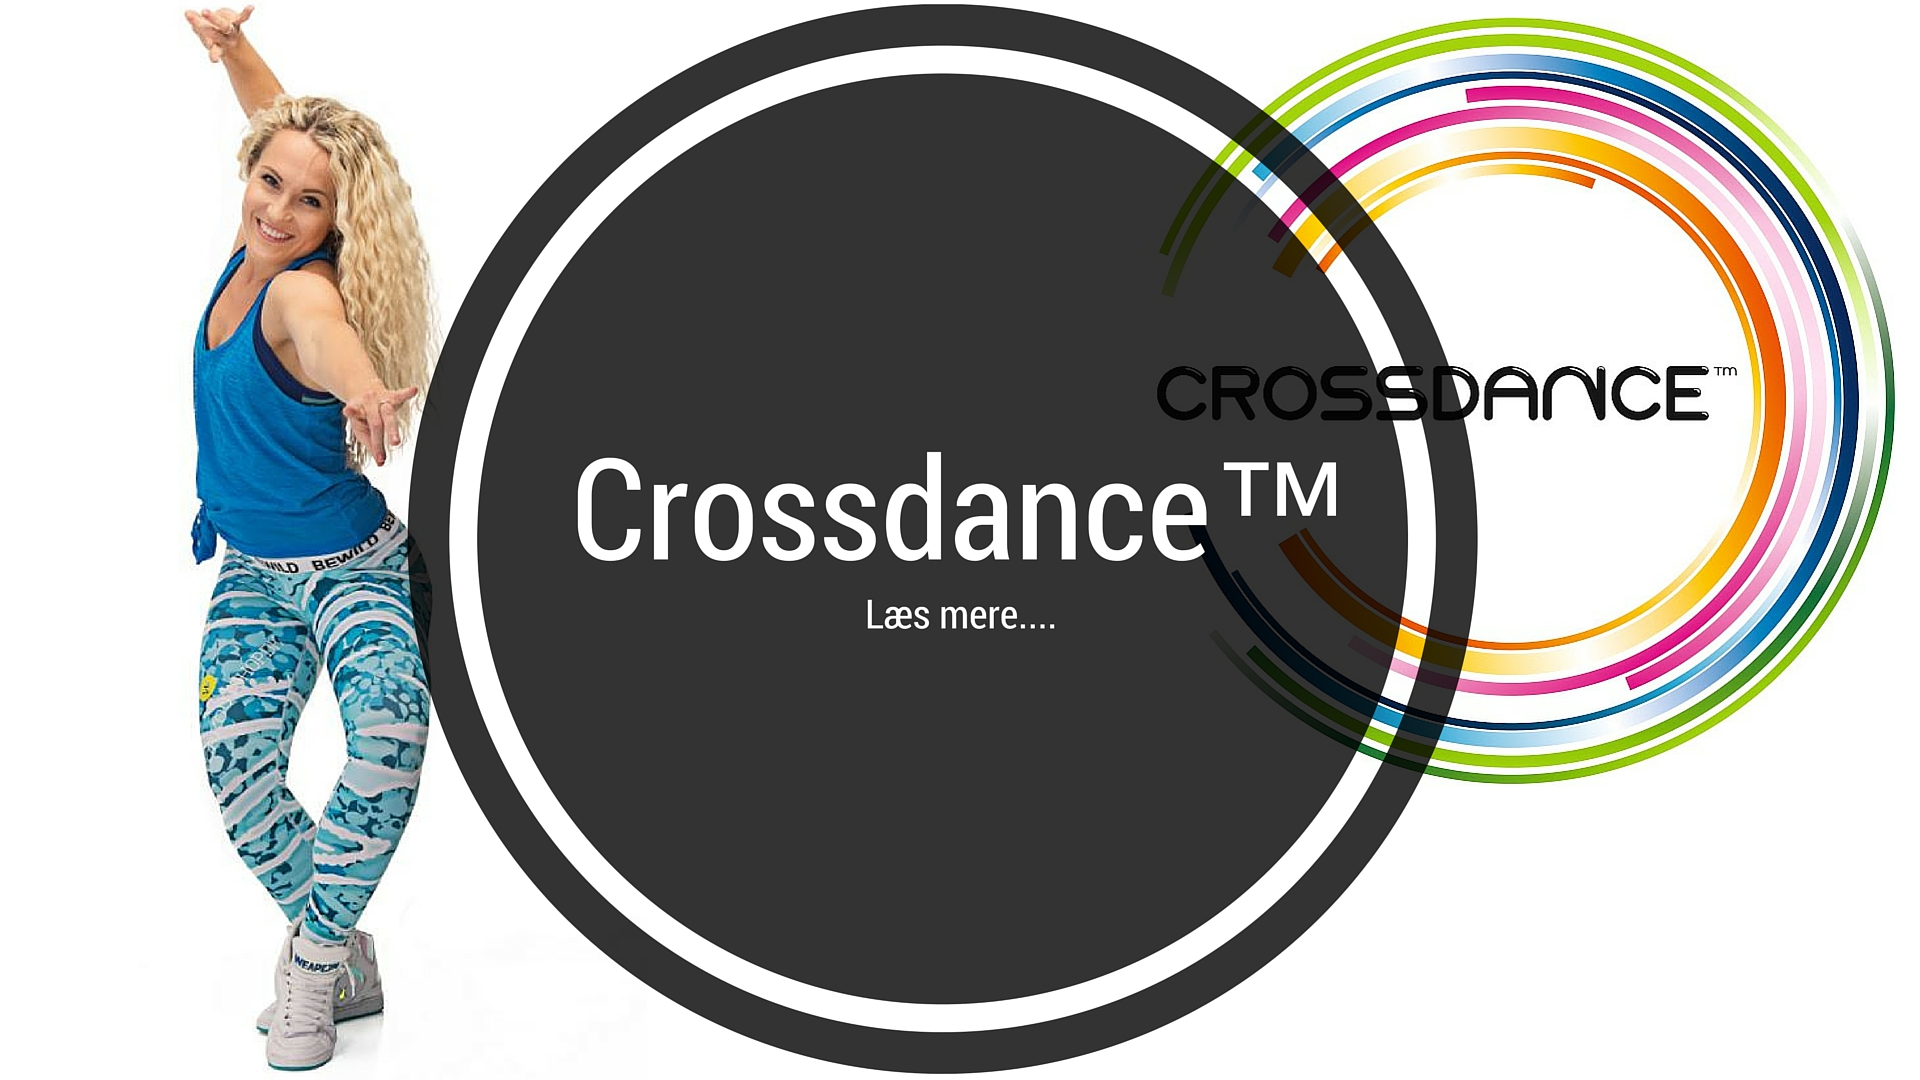 Crossdance™